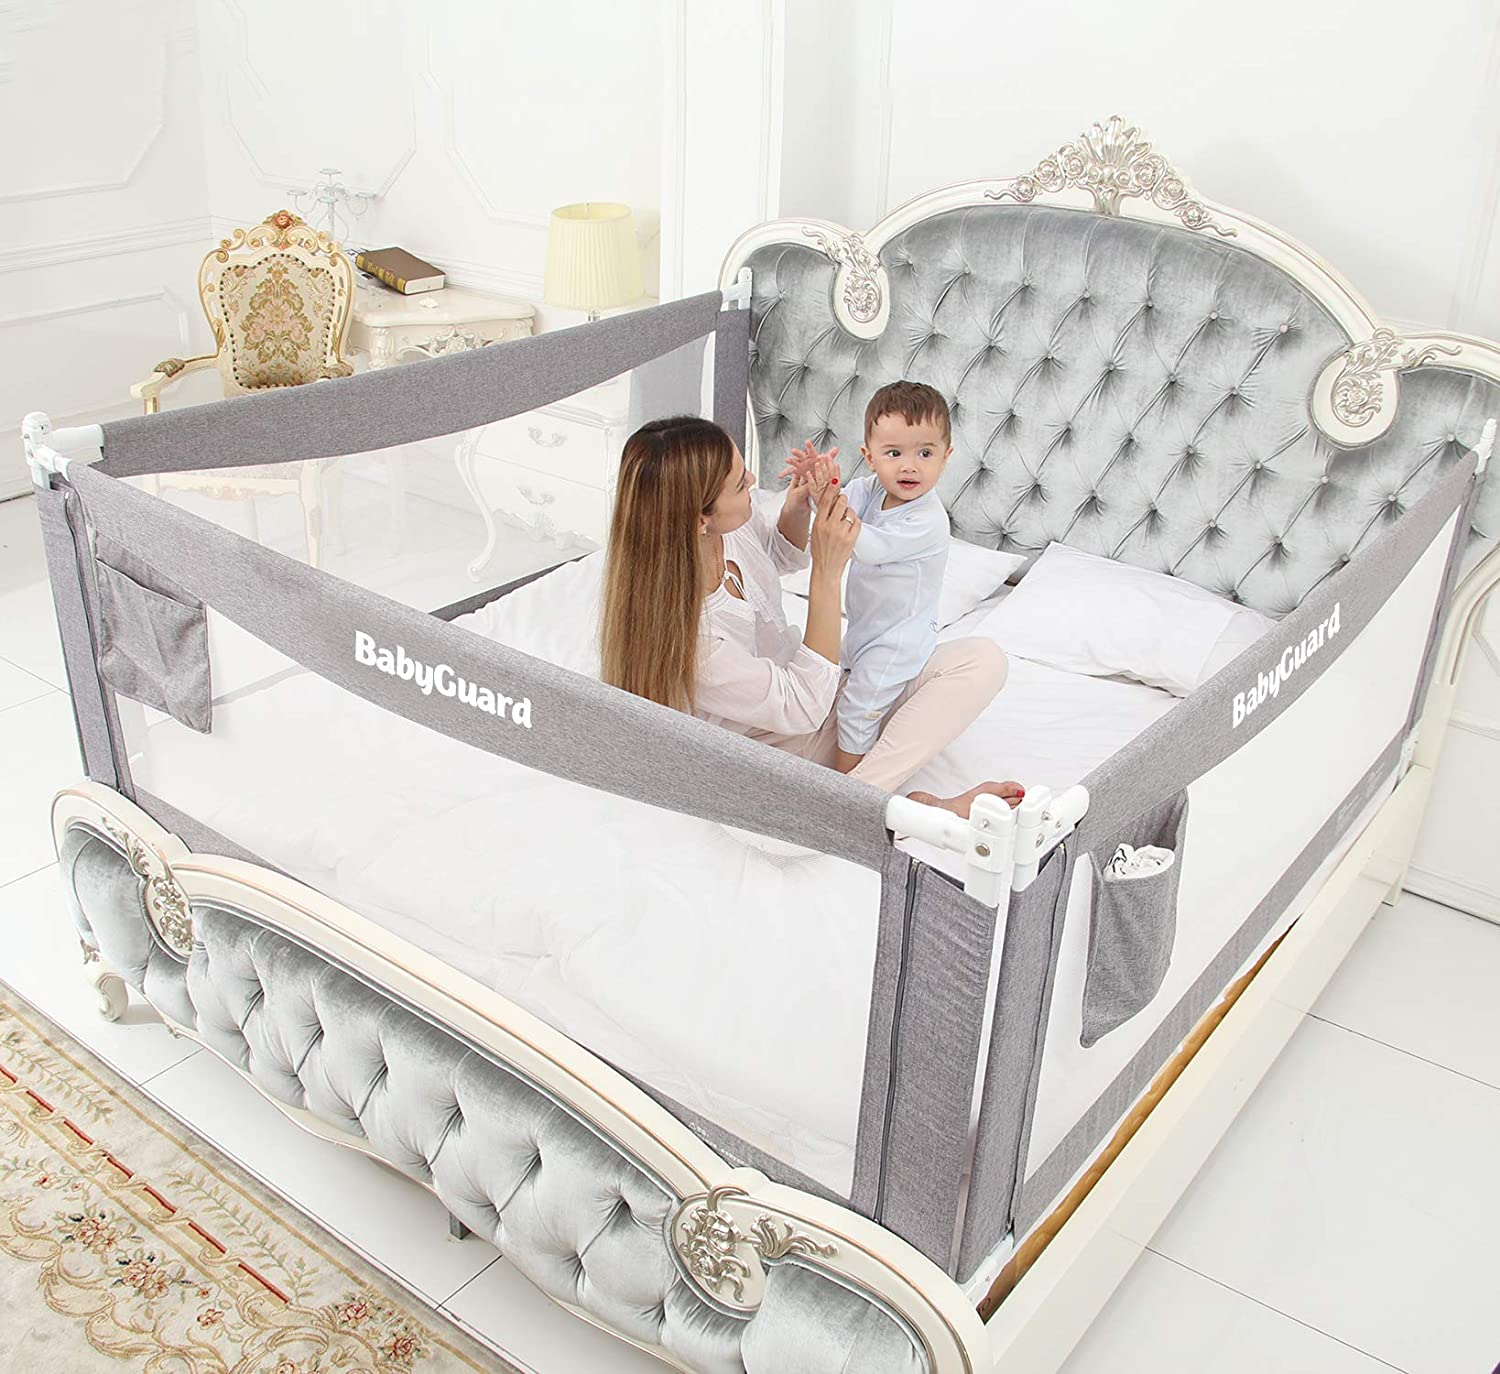 """BabyGuard Bed Rails for Toddlers - Extra Long and Tall Specially Designed for Twin, Full, Queen, King & California King Bed Mattress (1 Side, 54"""")"""